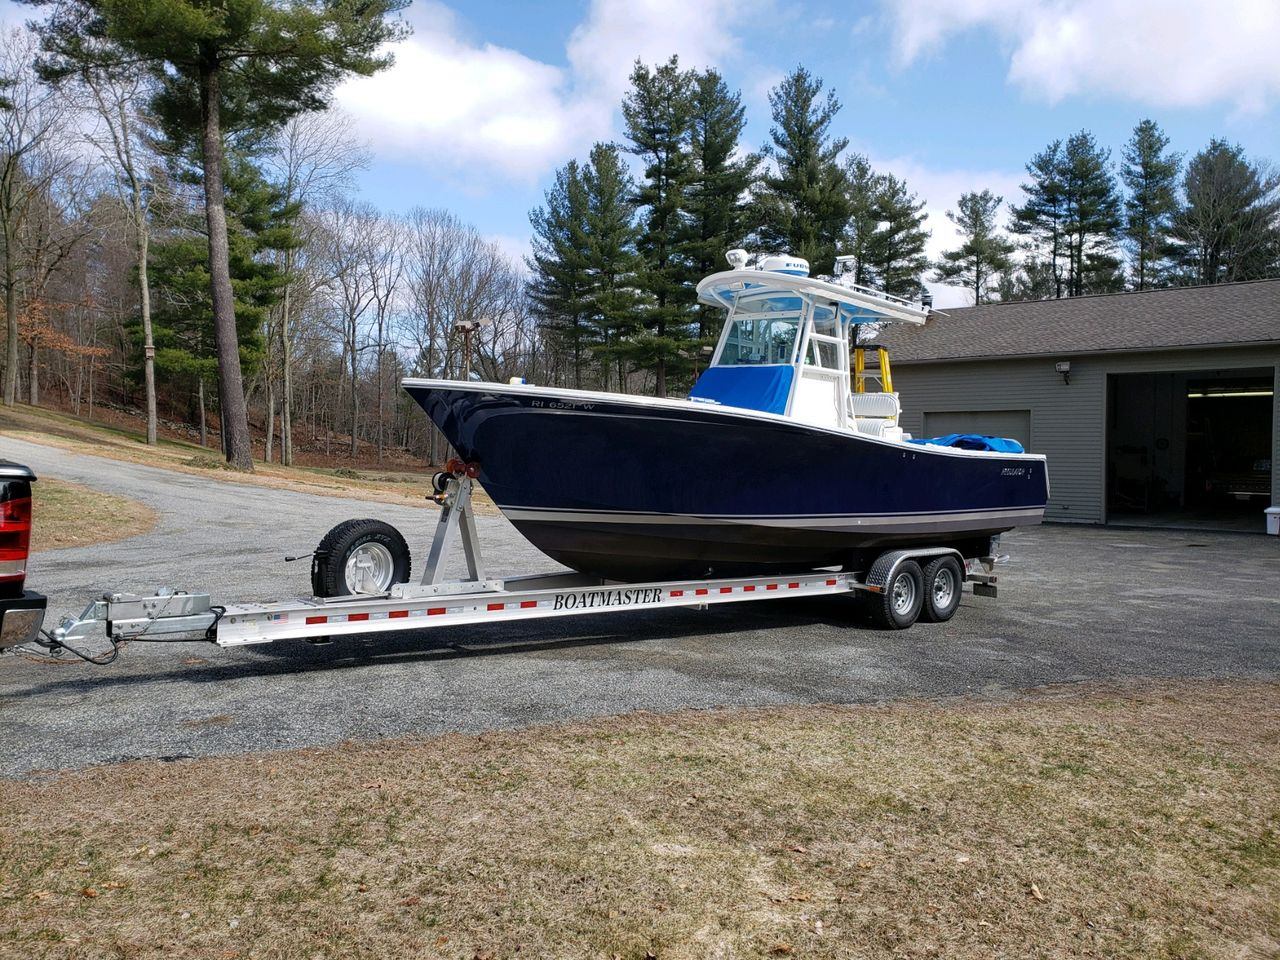 2008 Used Regulator 29 Classic Center Console Fishing Boat For Sale